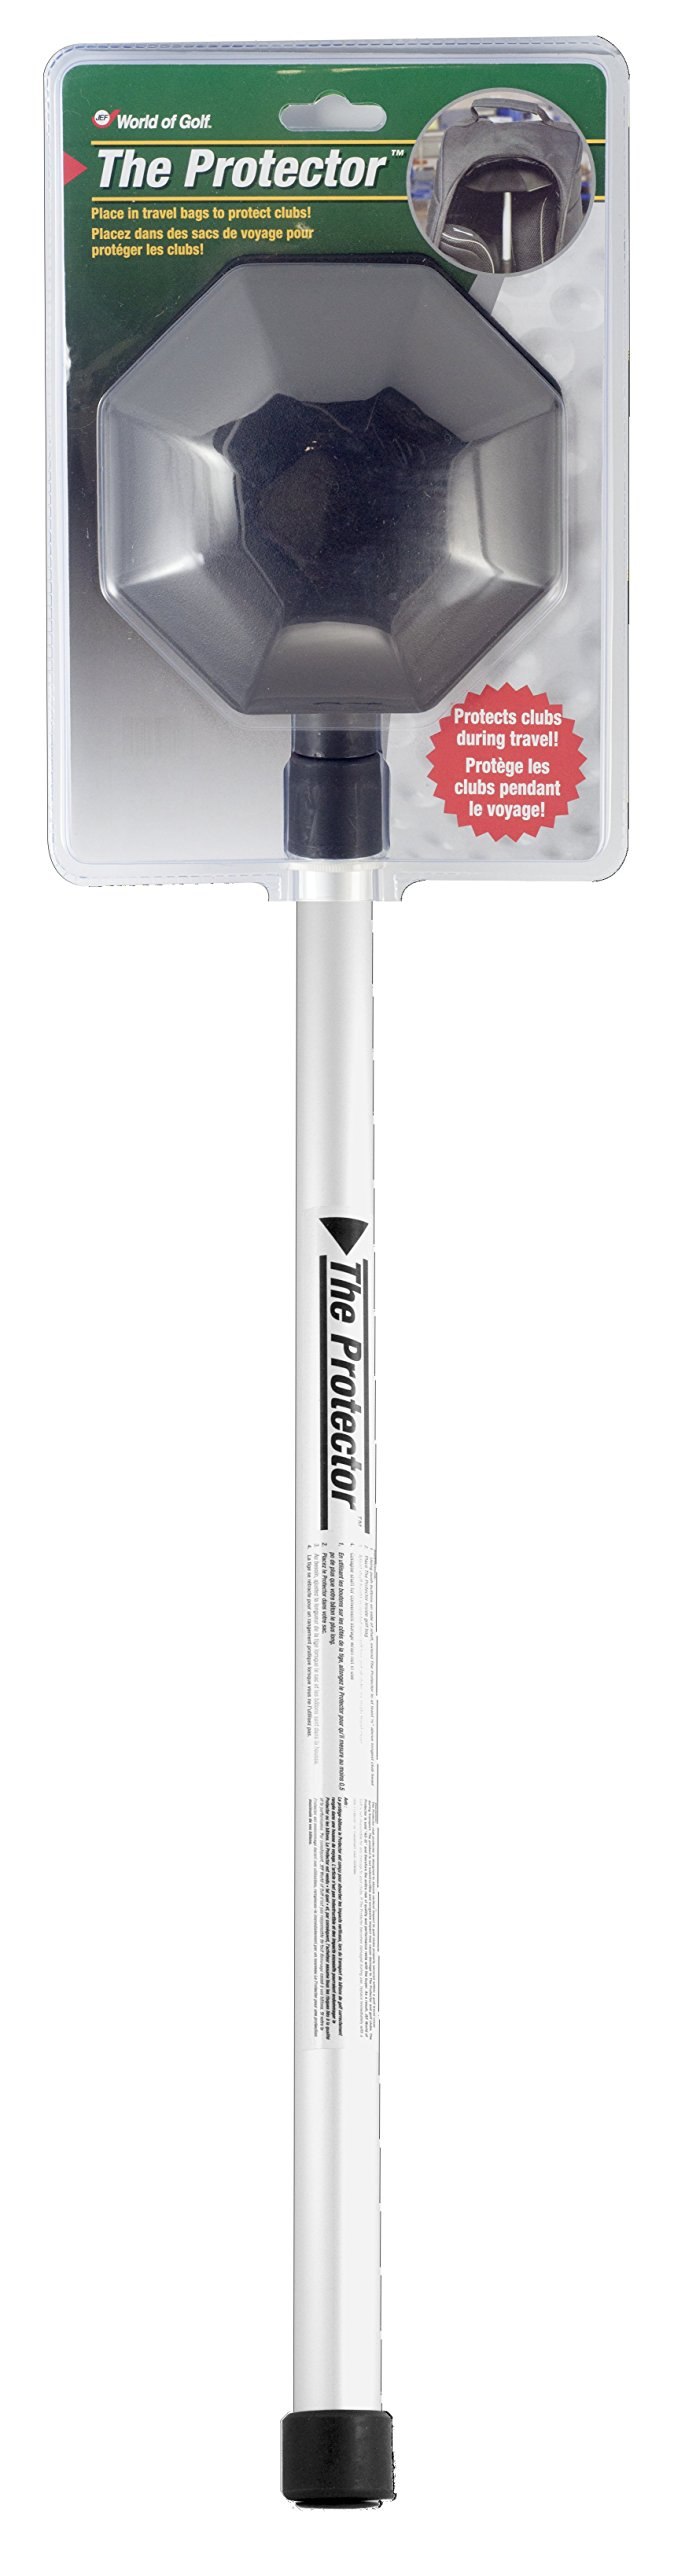 JEF WORLD OF GOLF The Protector Golf Club Travel Support Protection by JEF WORLD OF GOLF (Image #5)